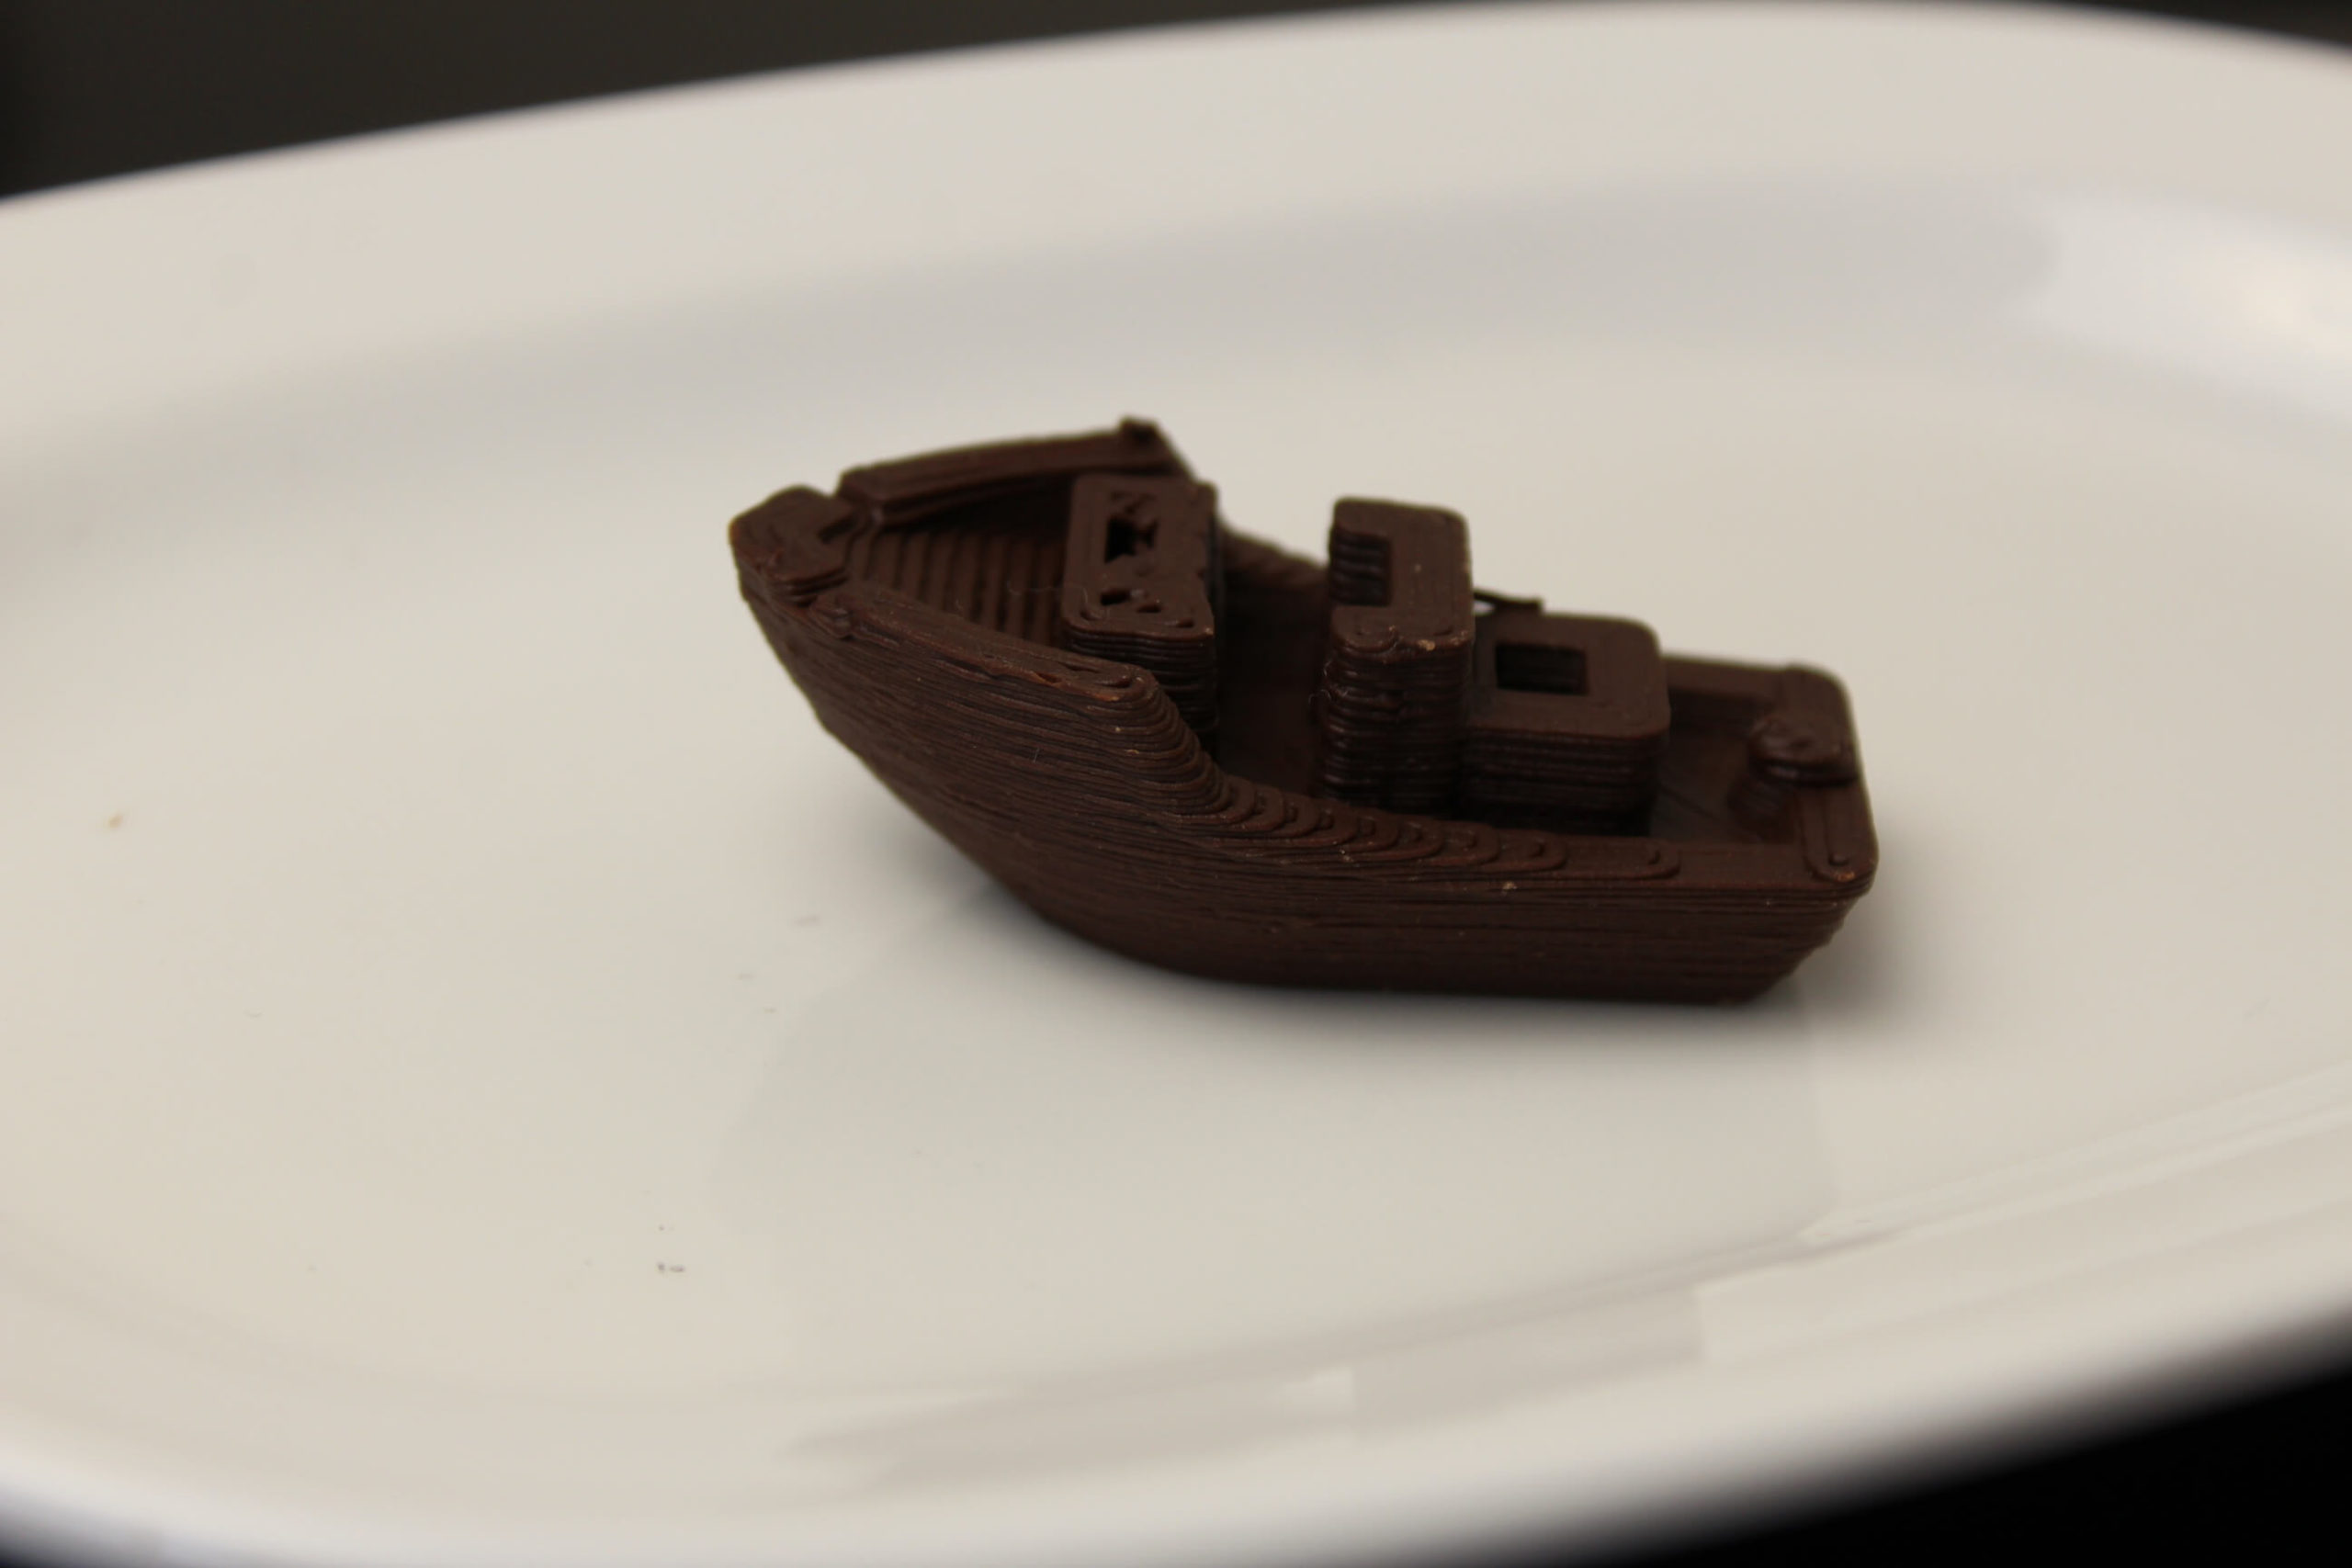 3D-Benchy-printed-on-Mycusini-Chocolate-3D-Printer-2